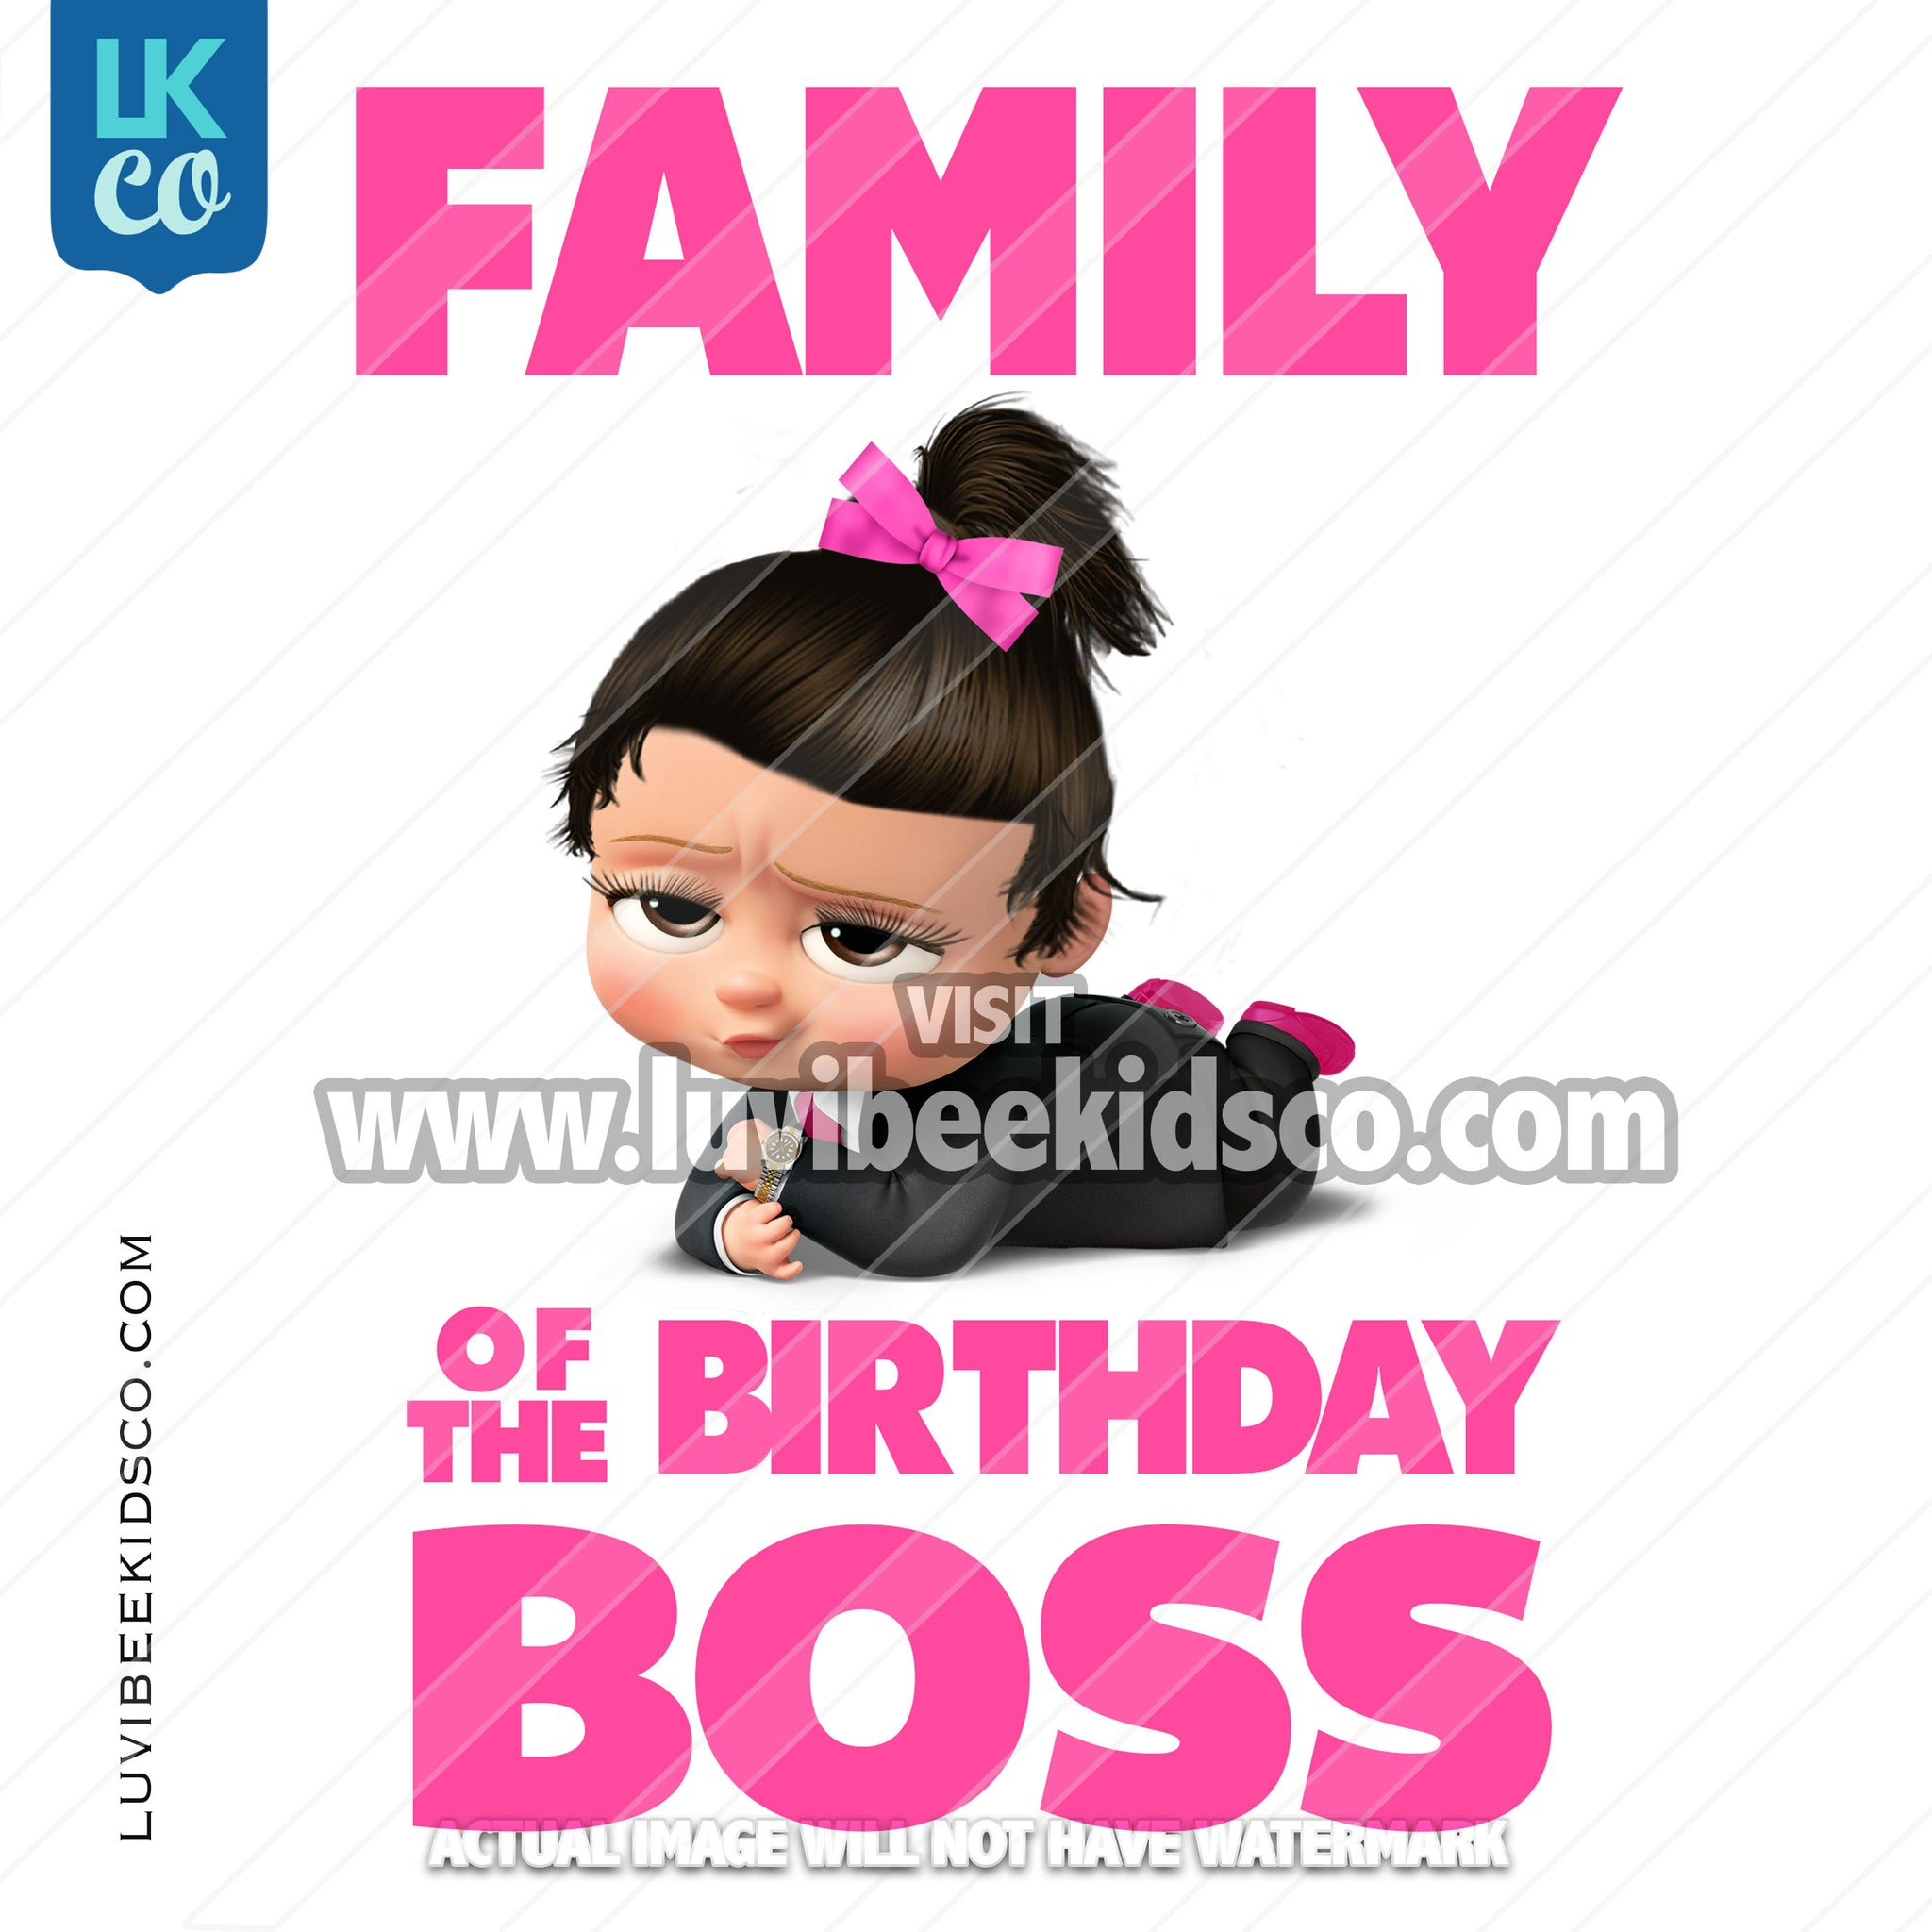 Boss Baby Iron On Transfer | Family of the Birthday Boss - Pink Baby Girl with Bow - LuvibeeKidsCo